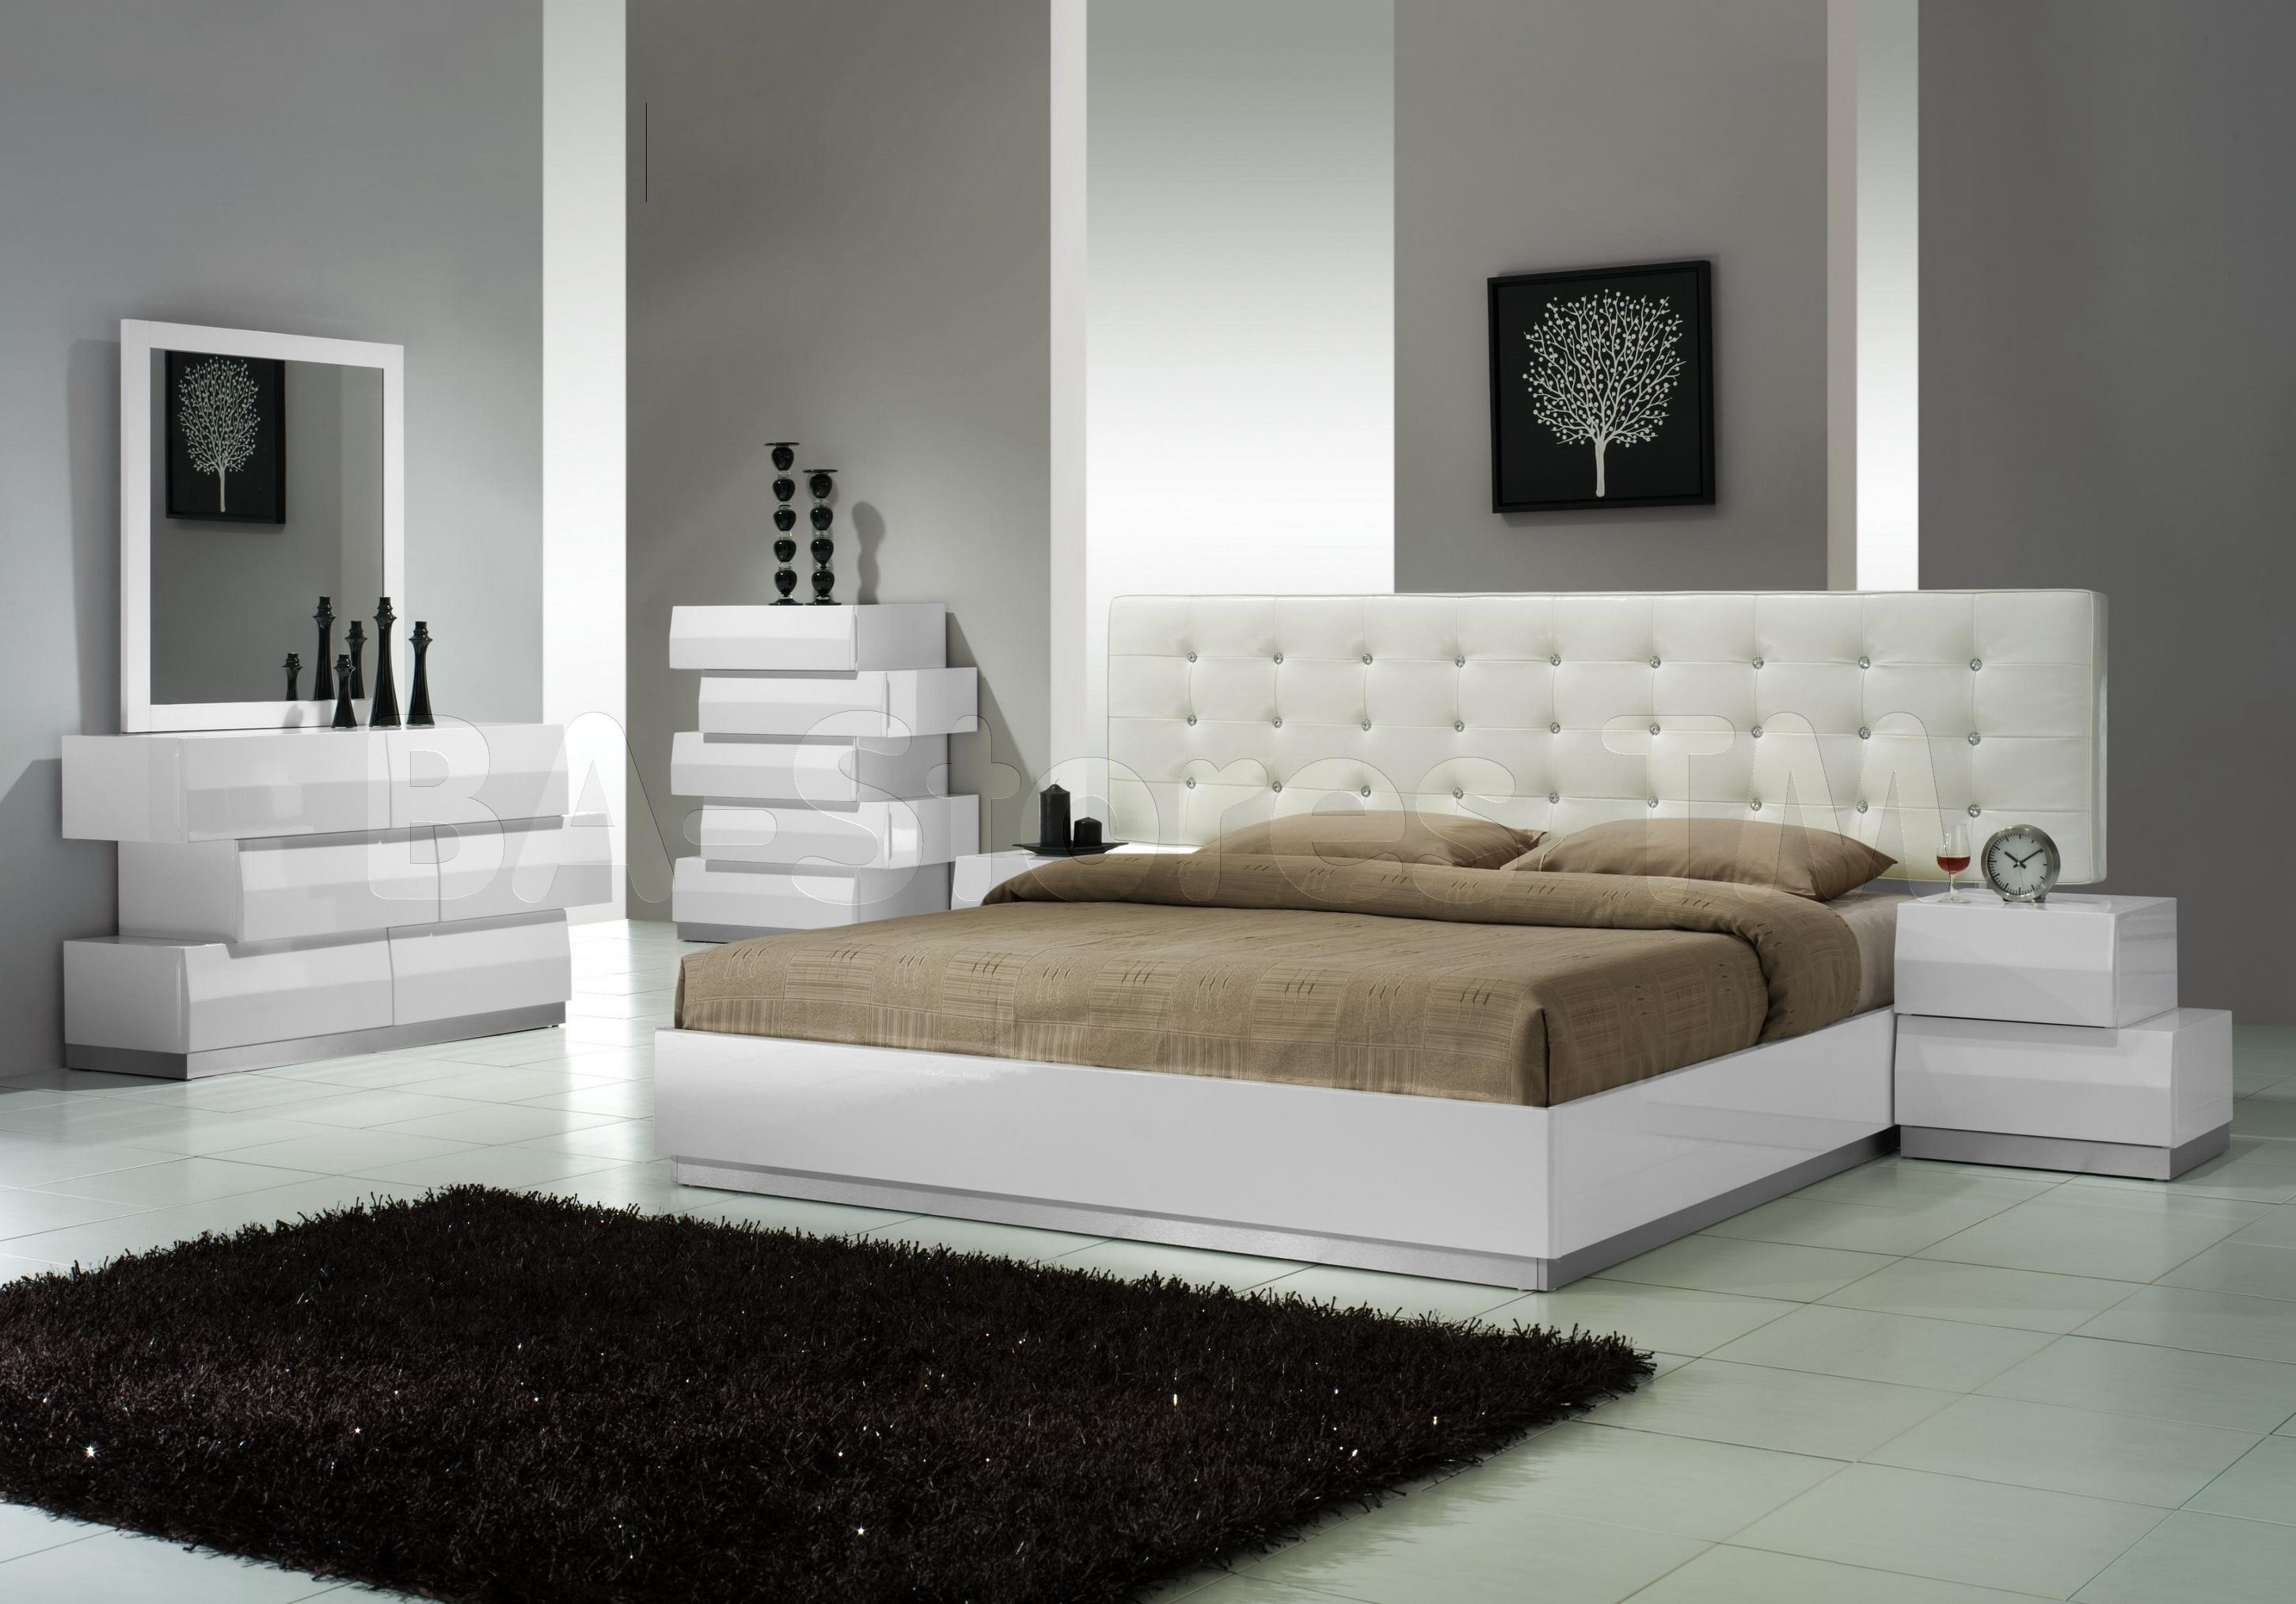 Attirant What Factors To Consider While Buying Contemporary Bedroom Furniture